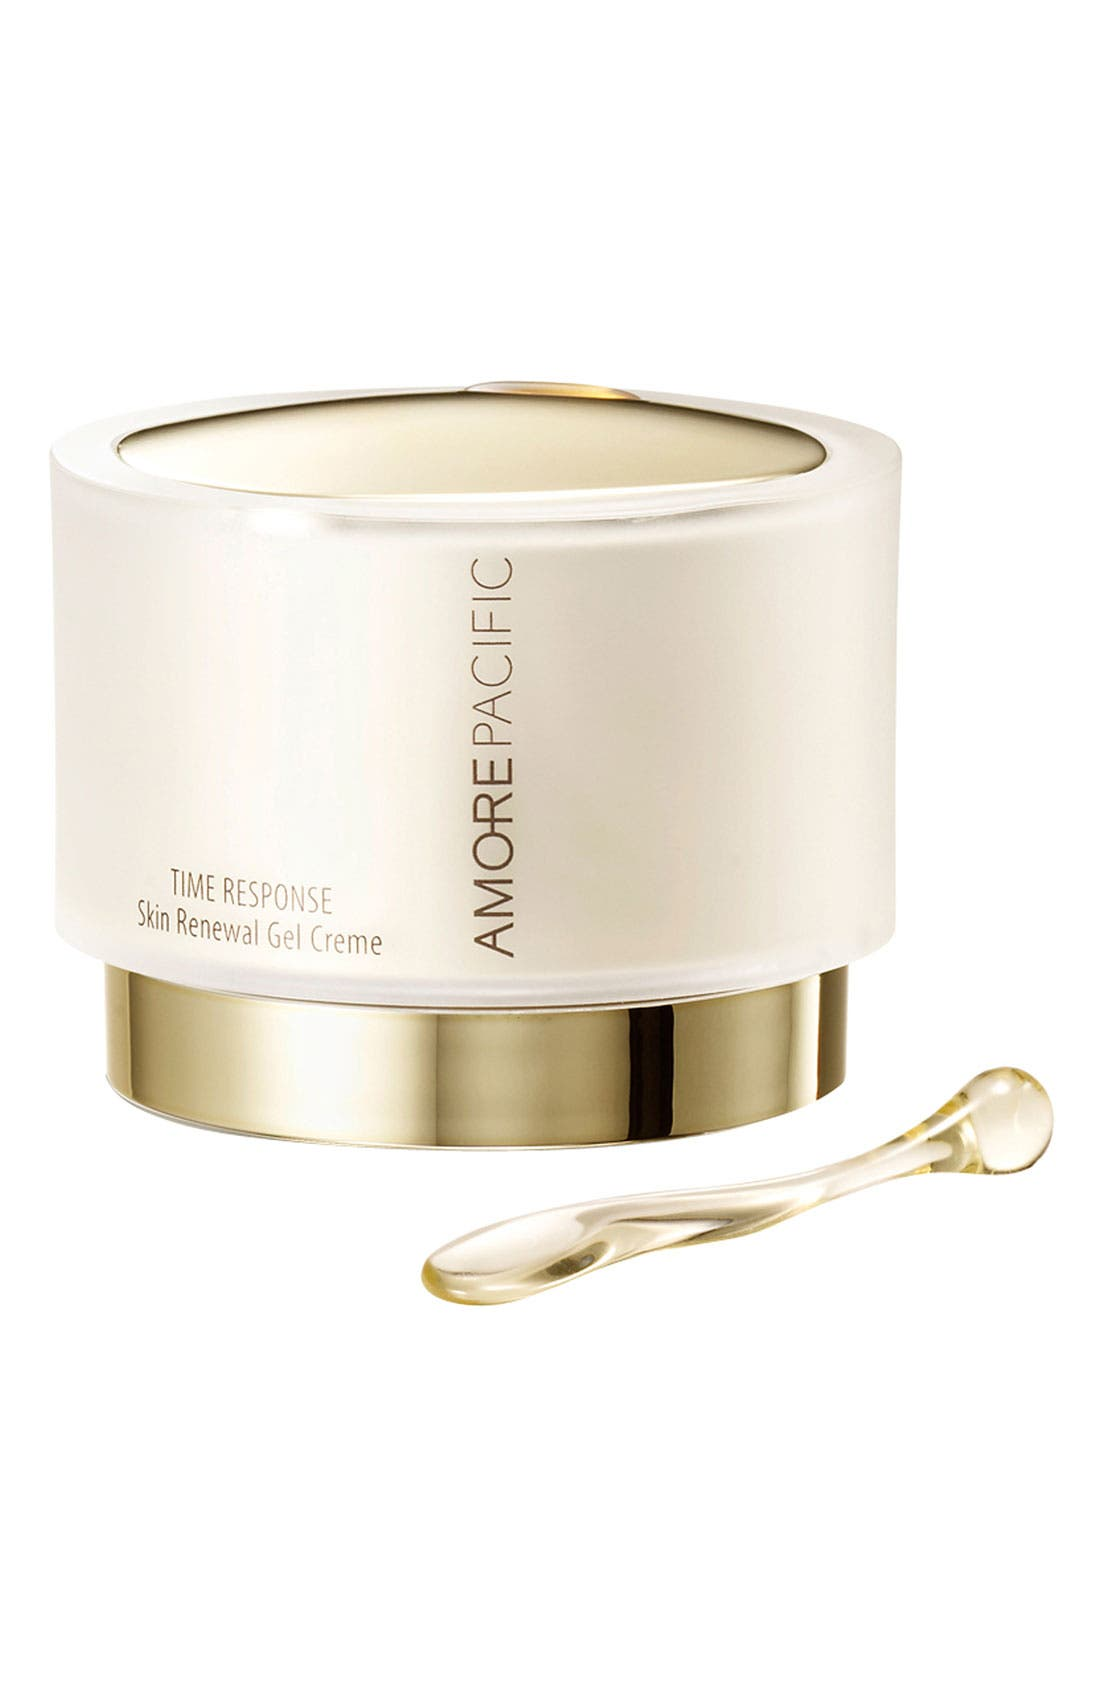 AMOREPACIFIC Time Response Skin Renewal Gel Crème